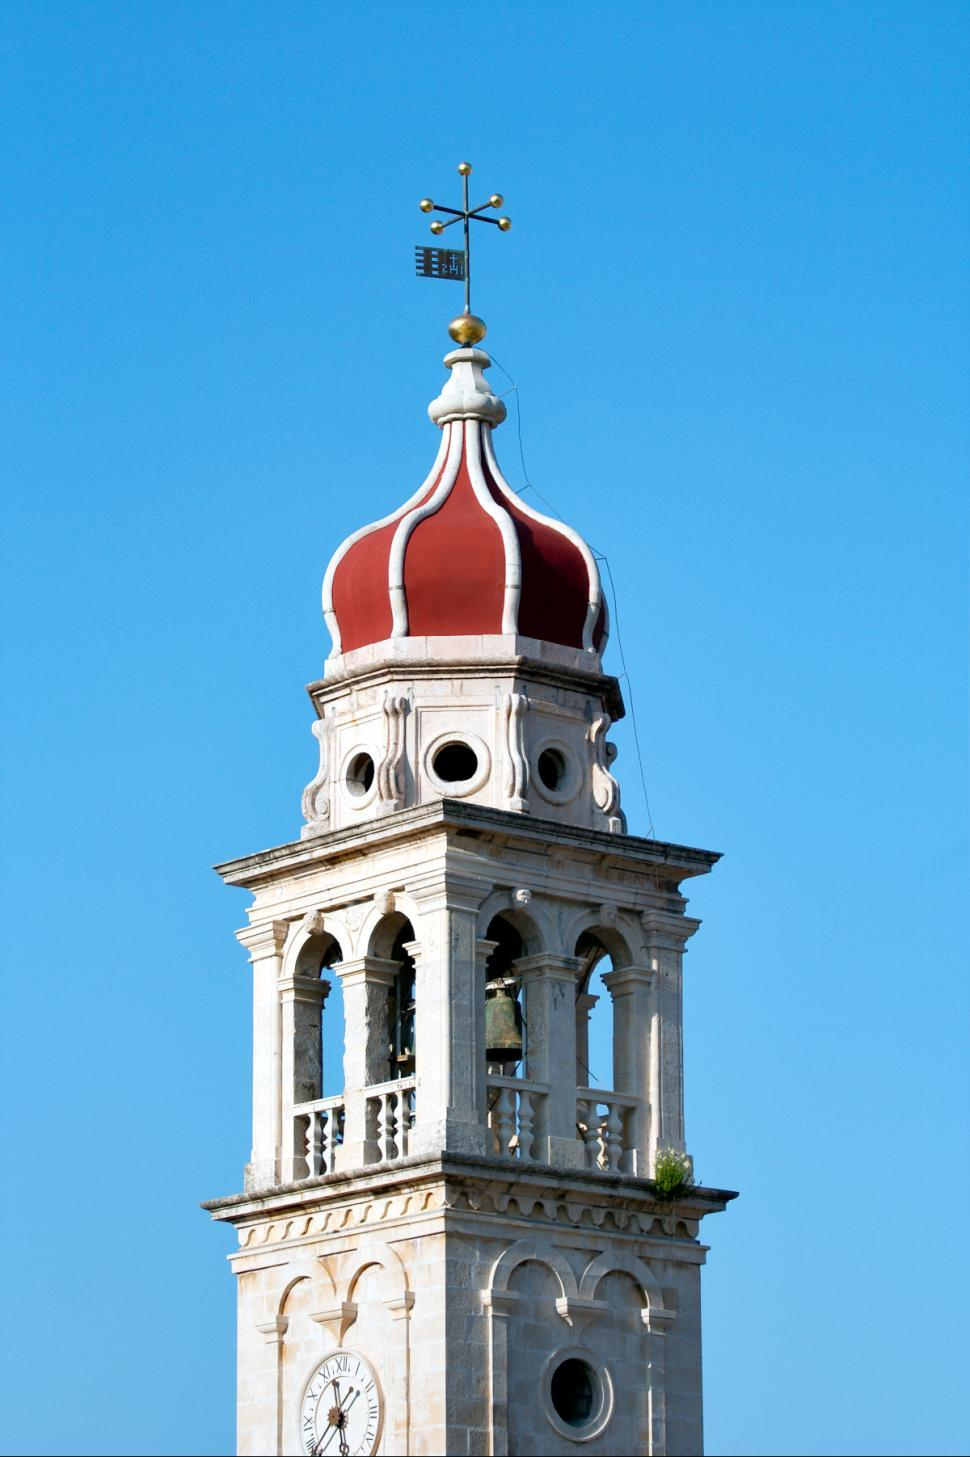 Download Free Stock HD Photo of Baroque church tower Online